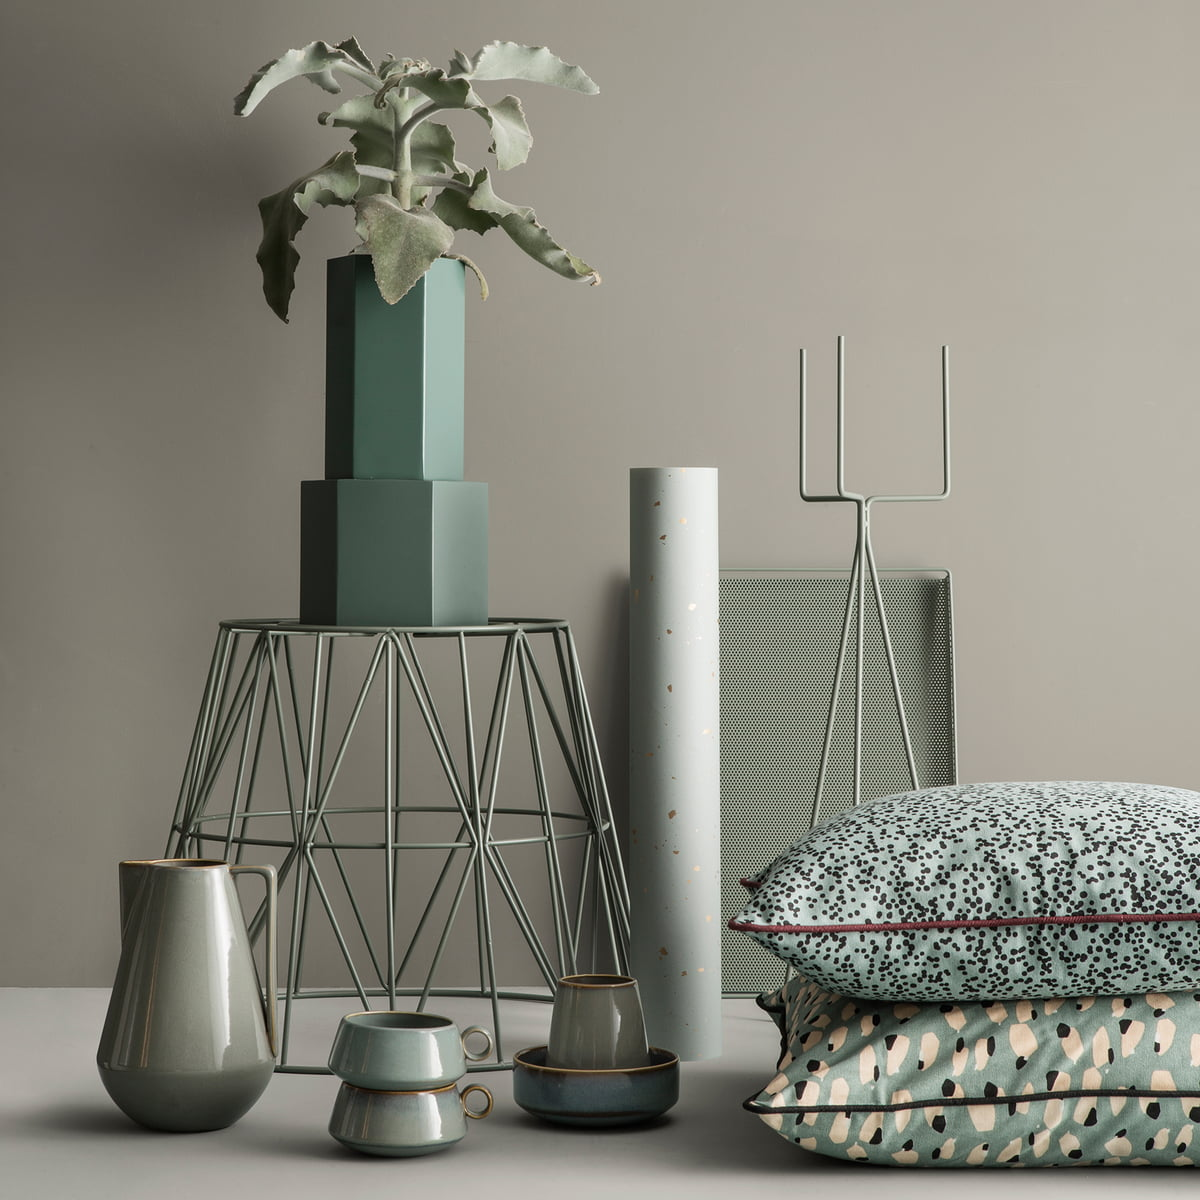 plant stand by ferm living in the shop - hexagon flowerpot and vase with plant stand by ferm living